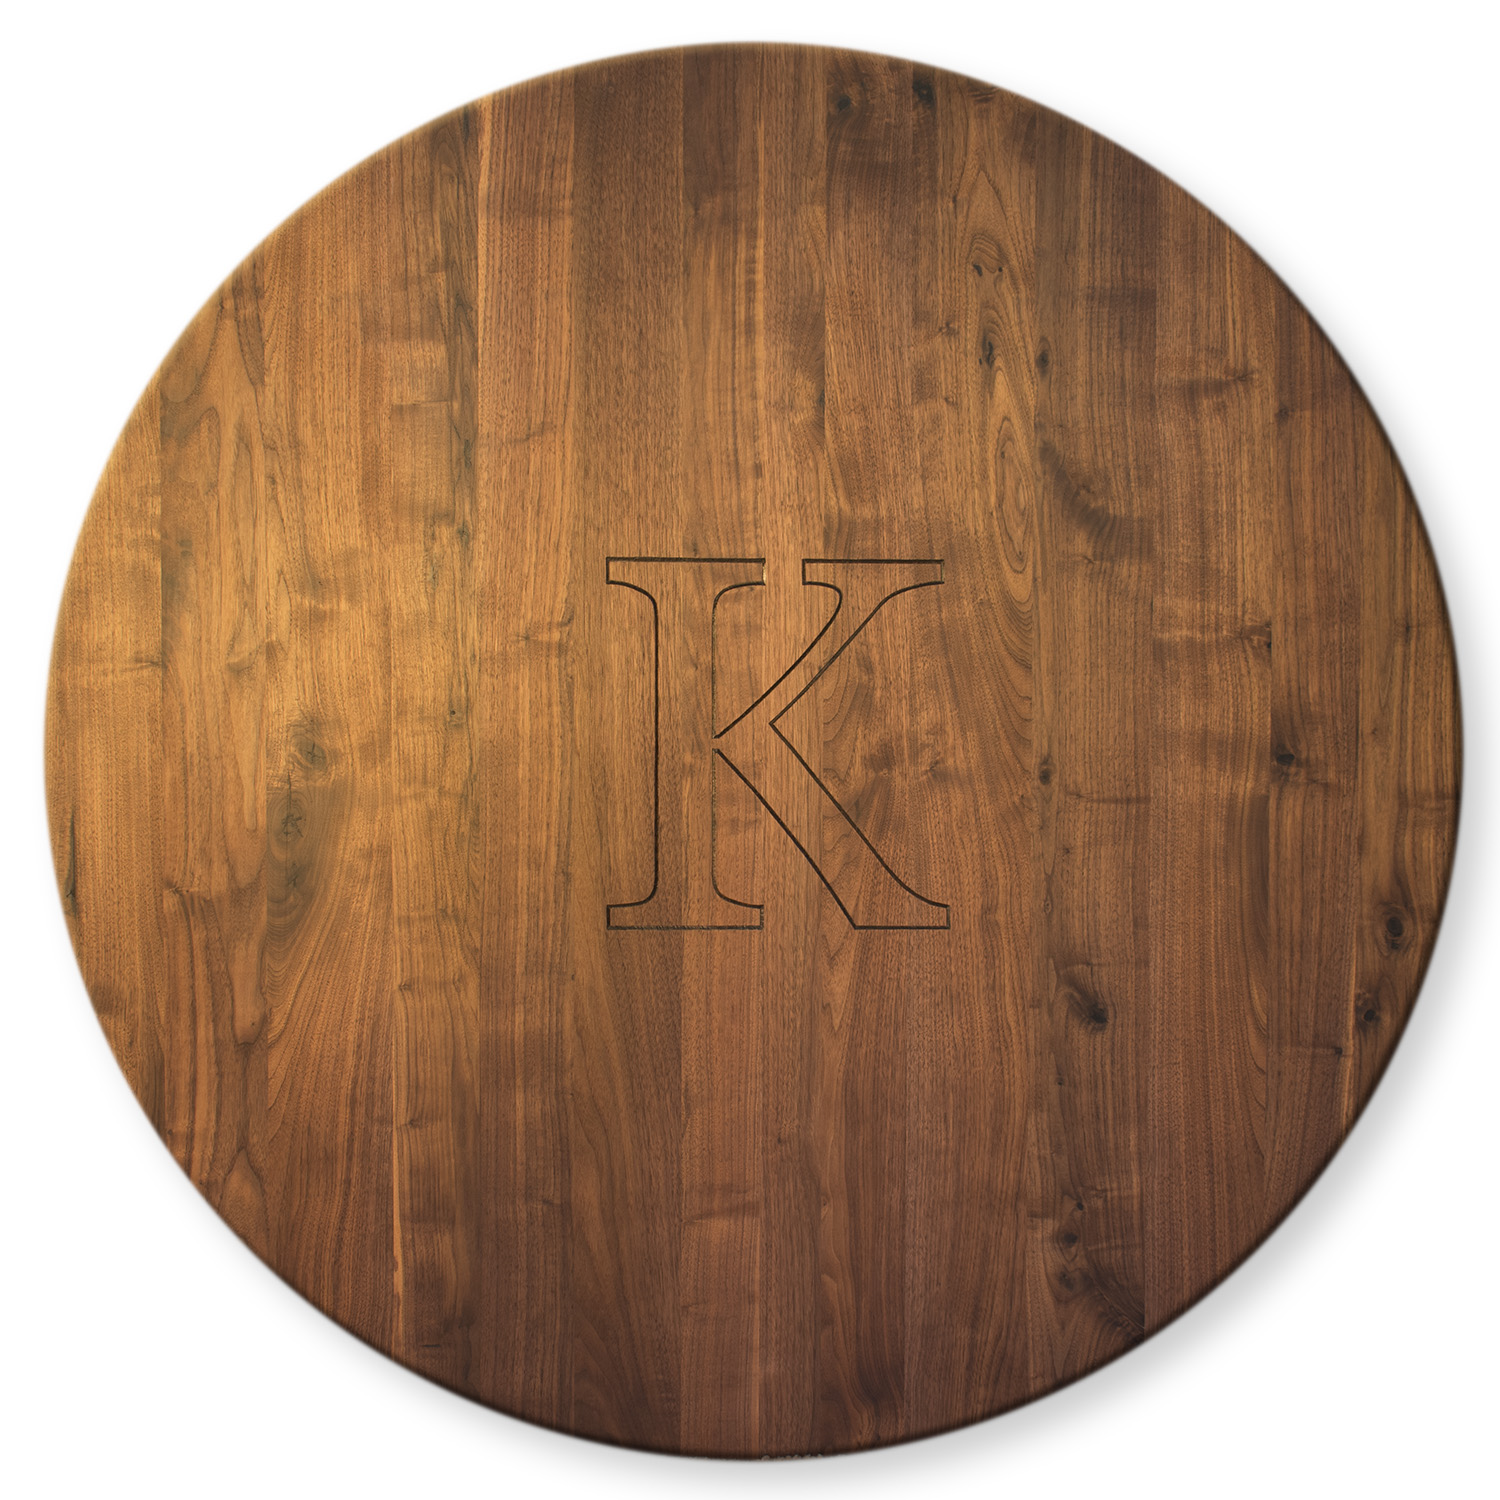 Solid-Walnut-Round-Tabletop-w1.jpg